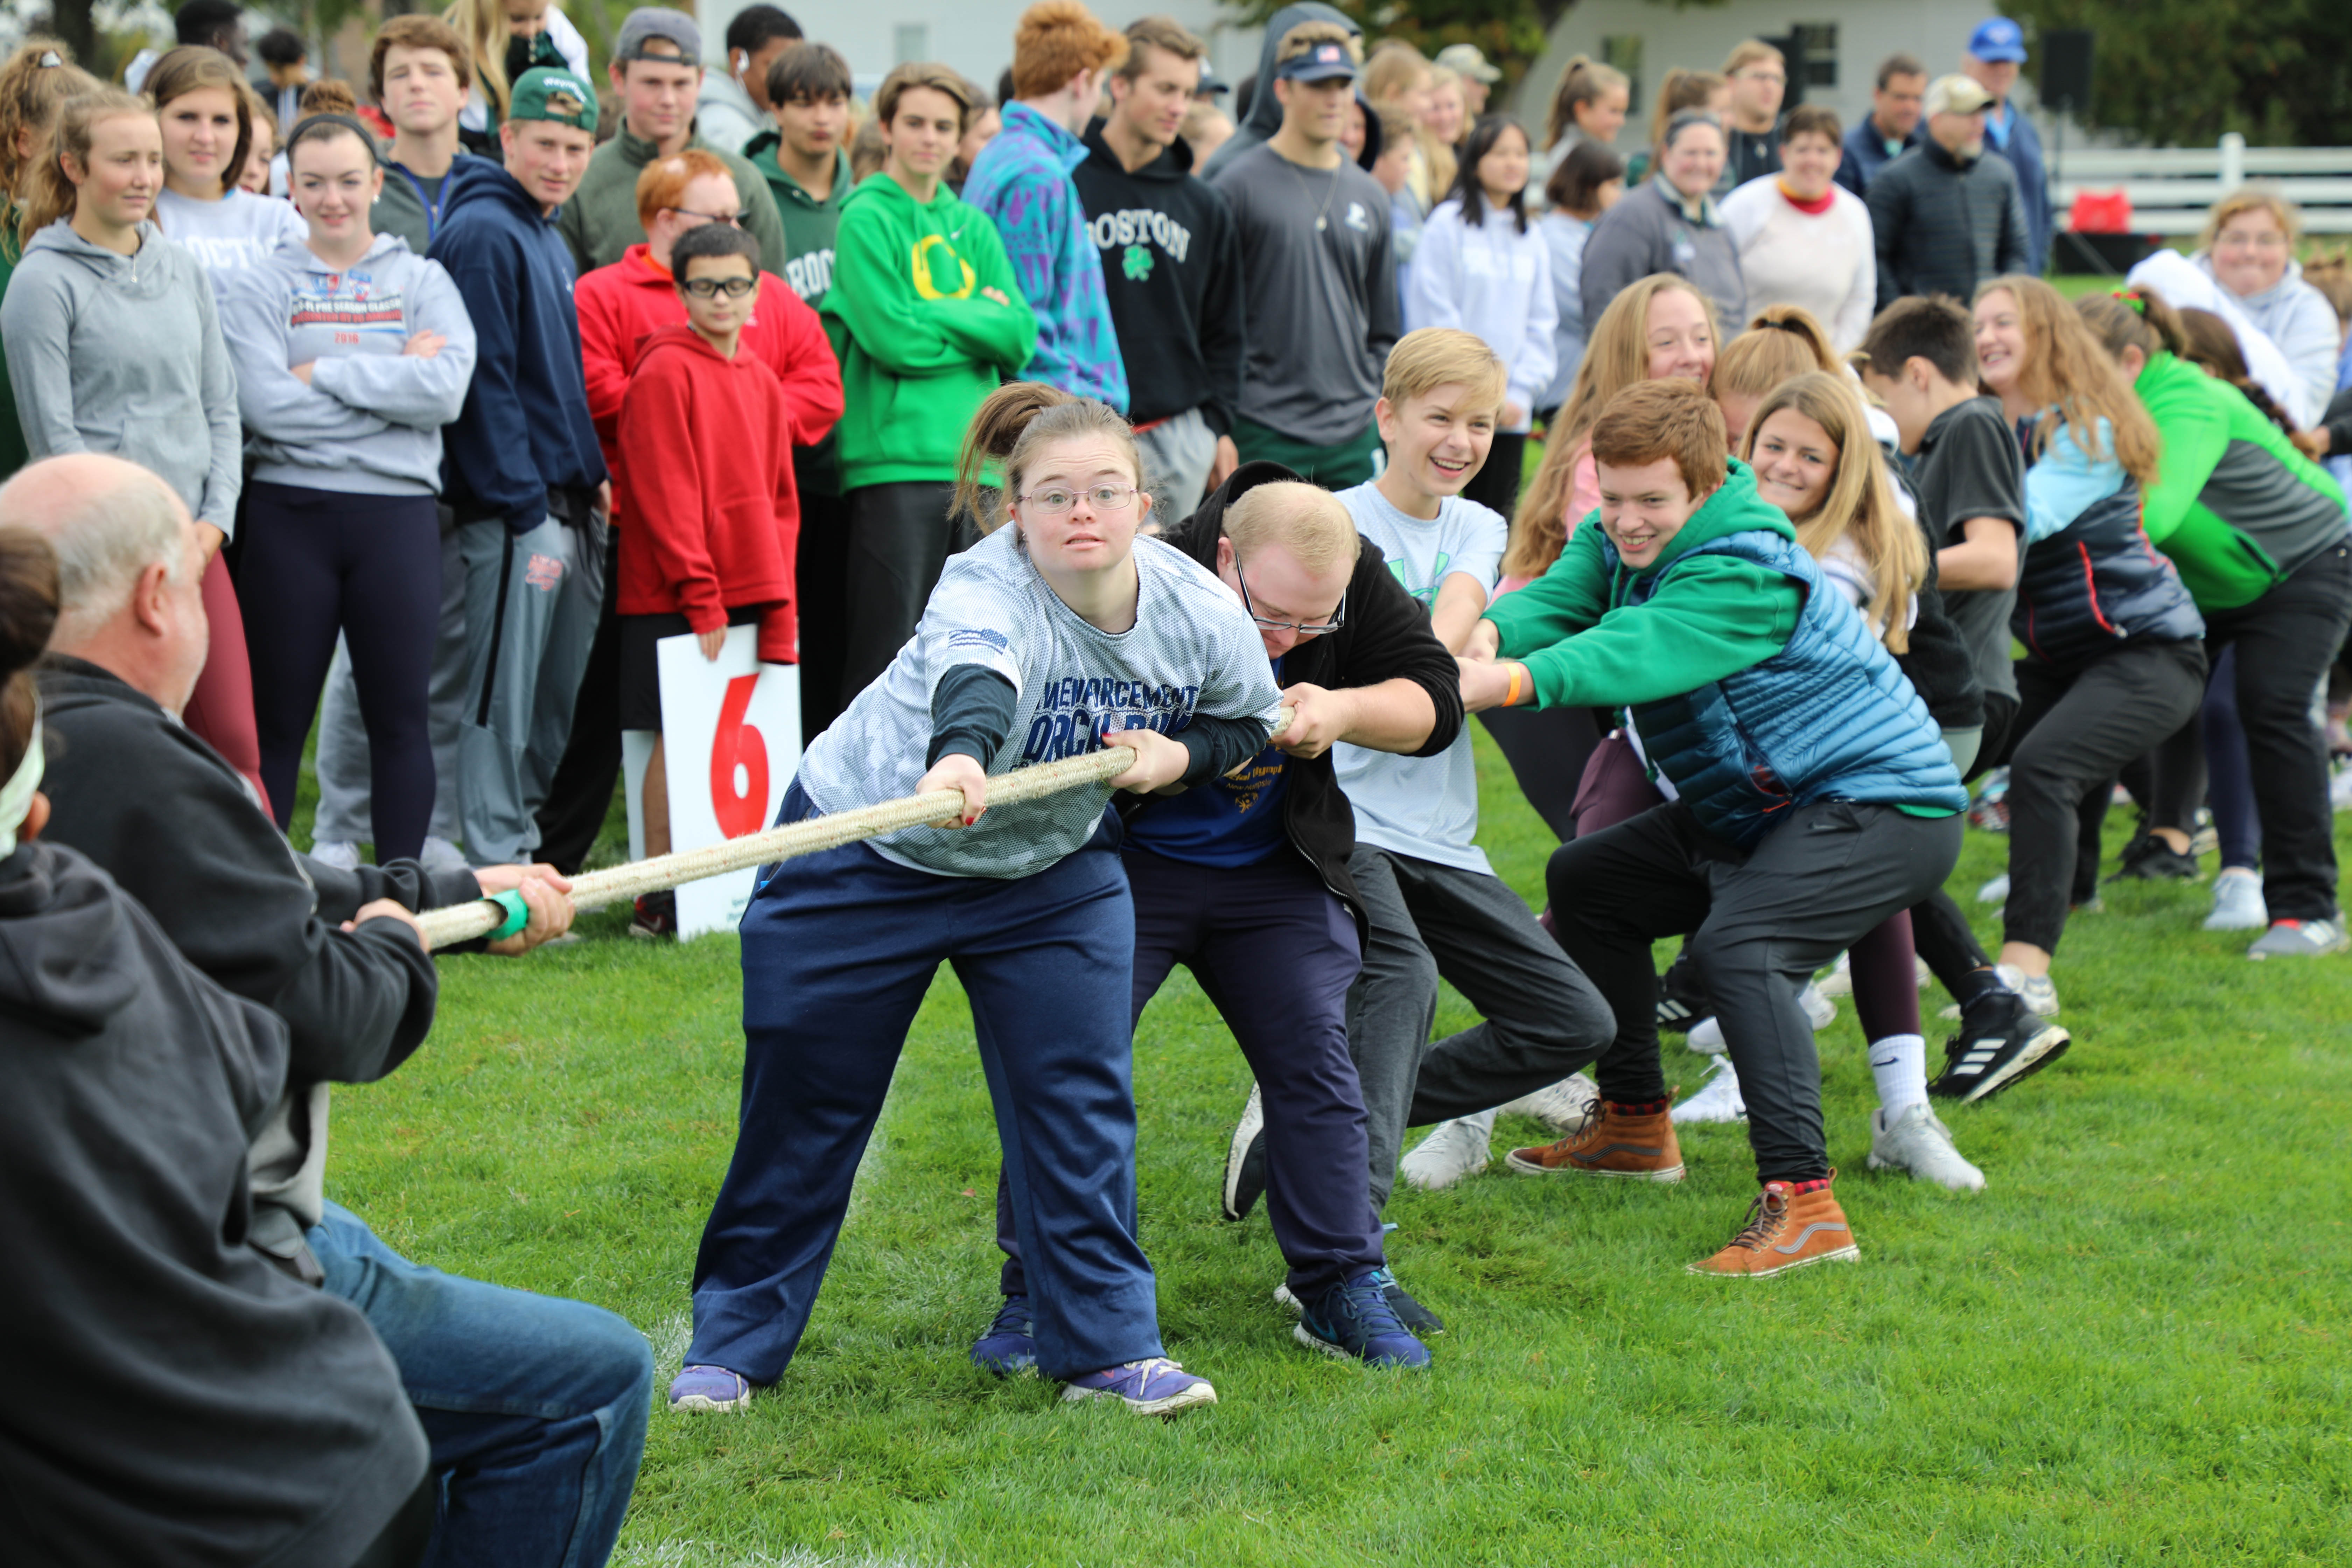 Proctor Academy Special Olympics